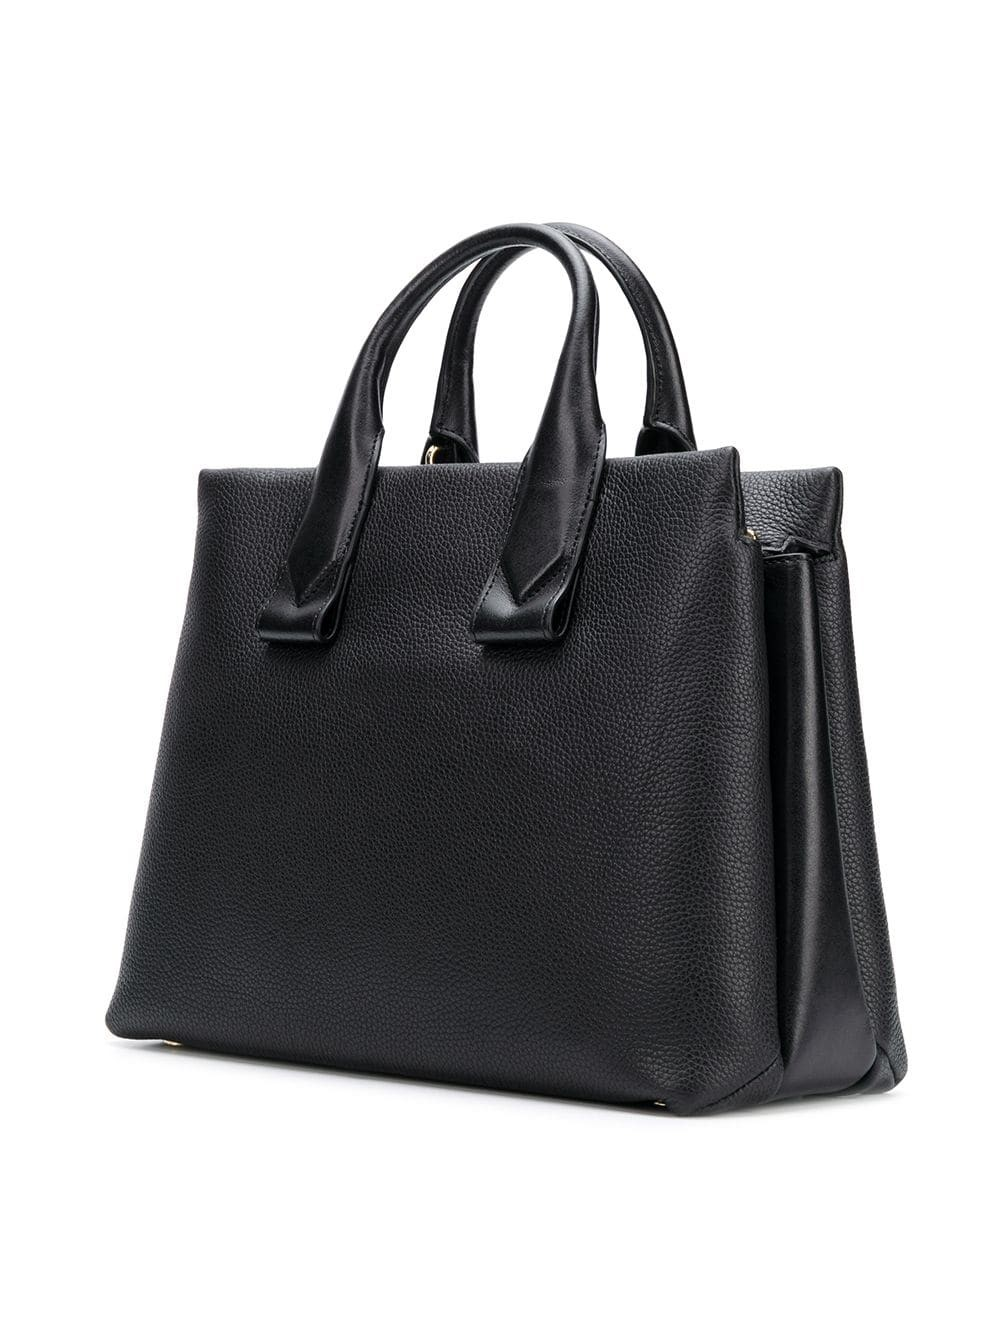 4b01a25538ae michael kors mk LOGO TOTE BAG available on montiboutique.com - 25210